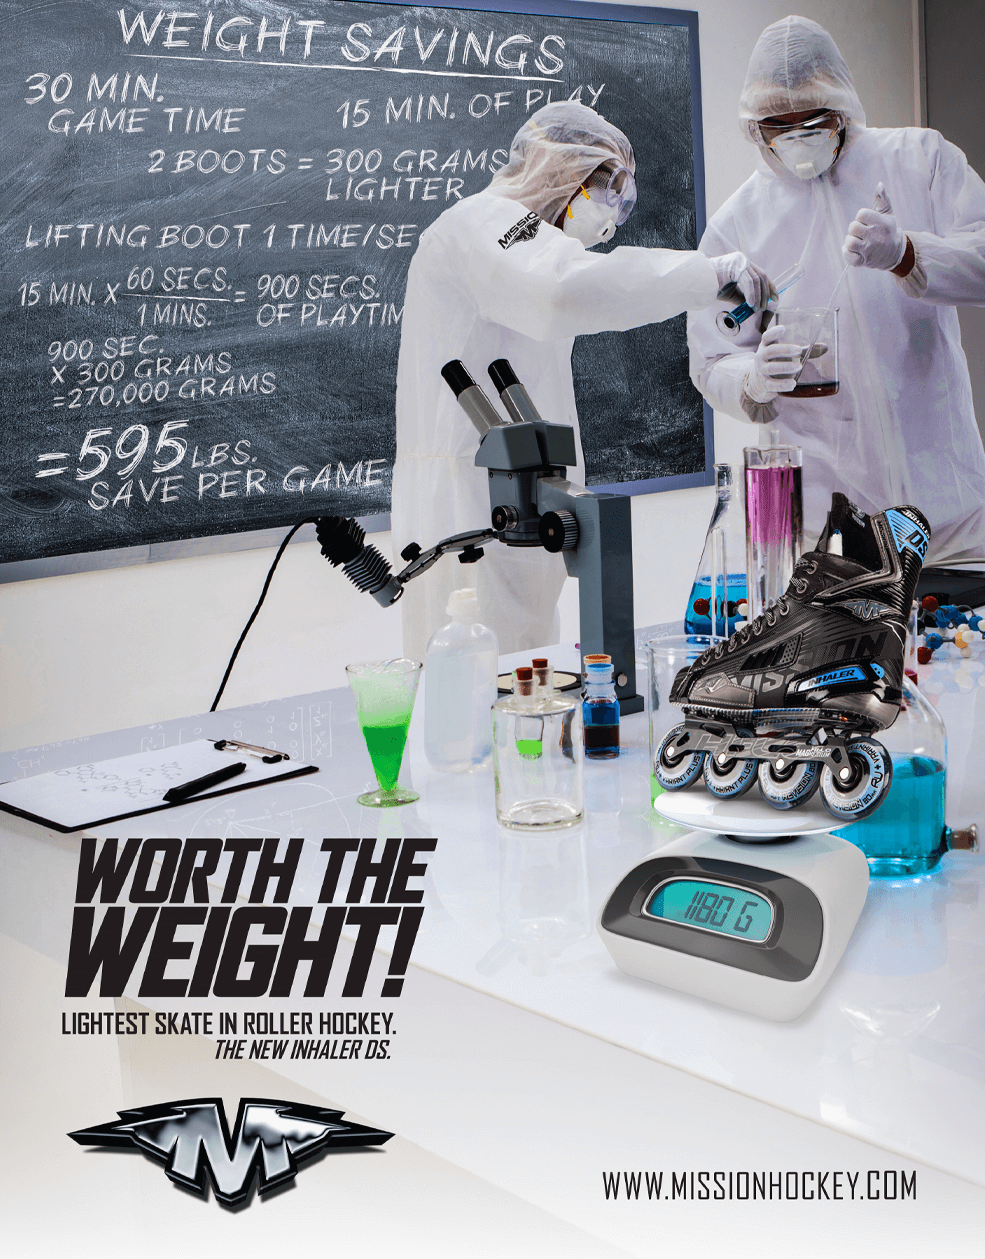 Mission Hockey - Worth the Wait! Magazine Ad